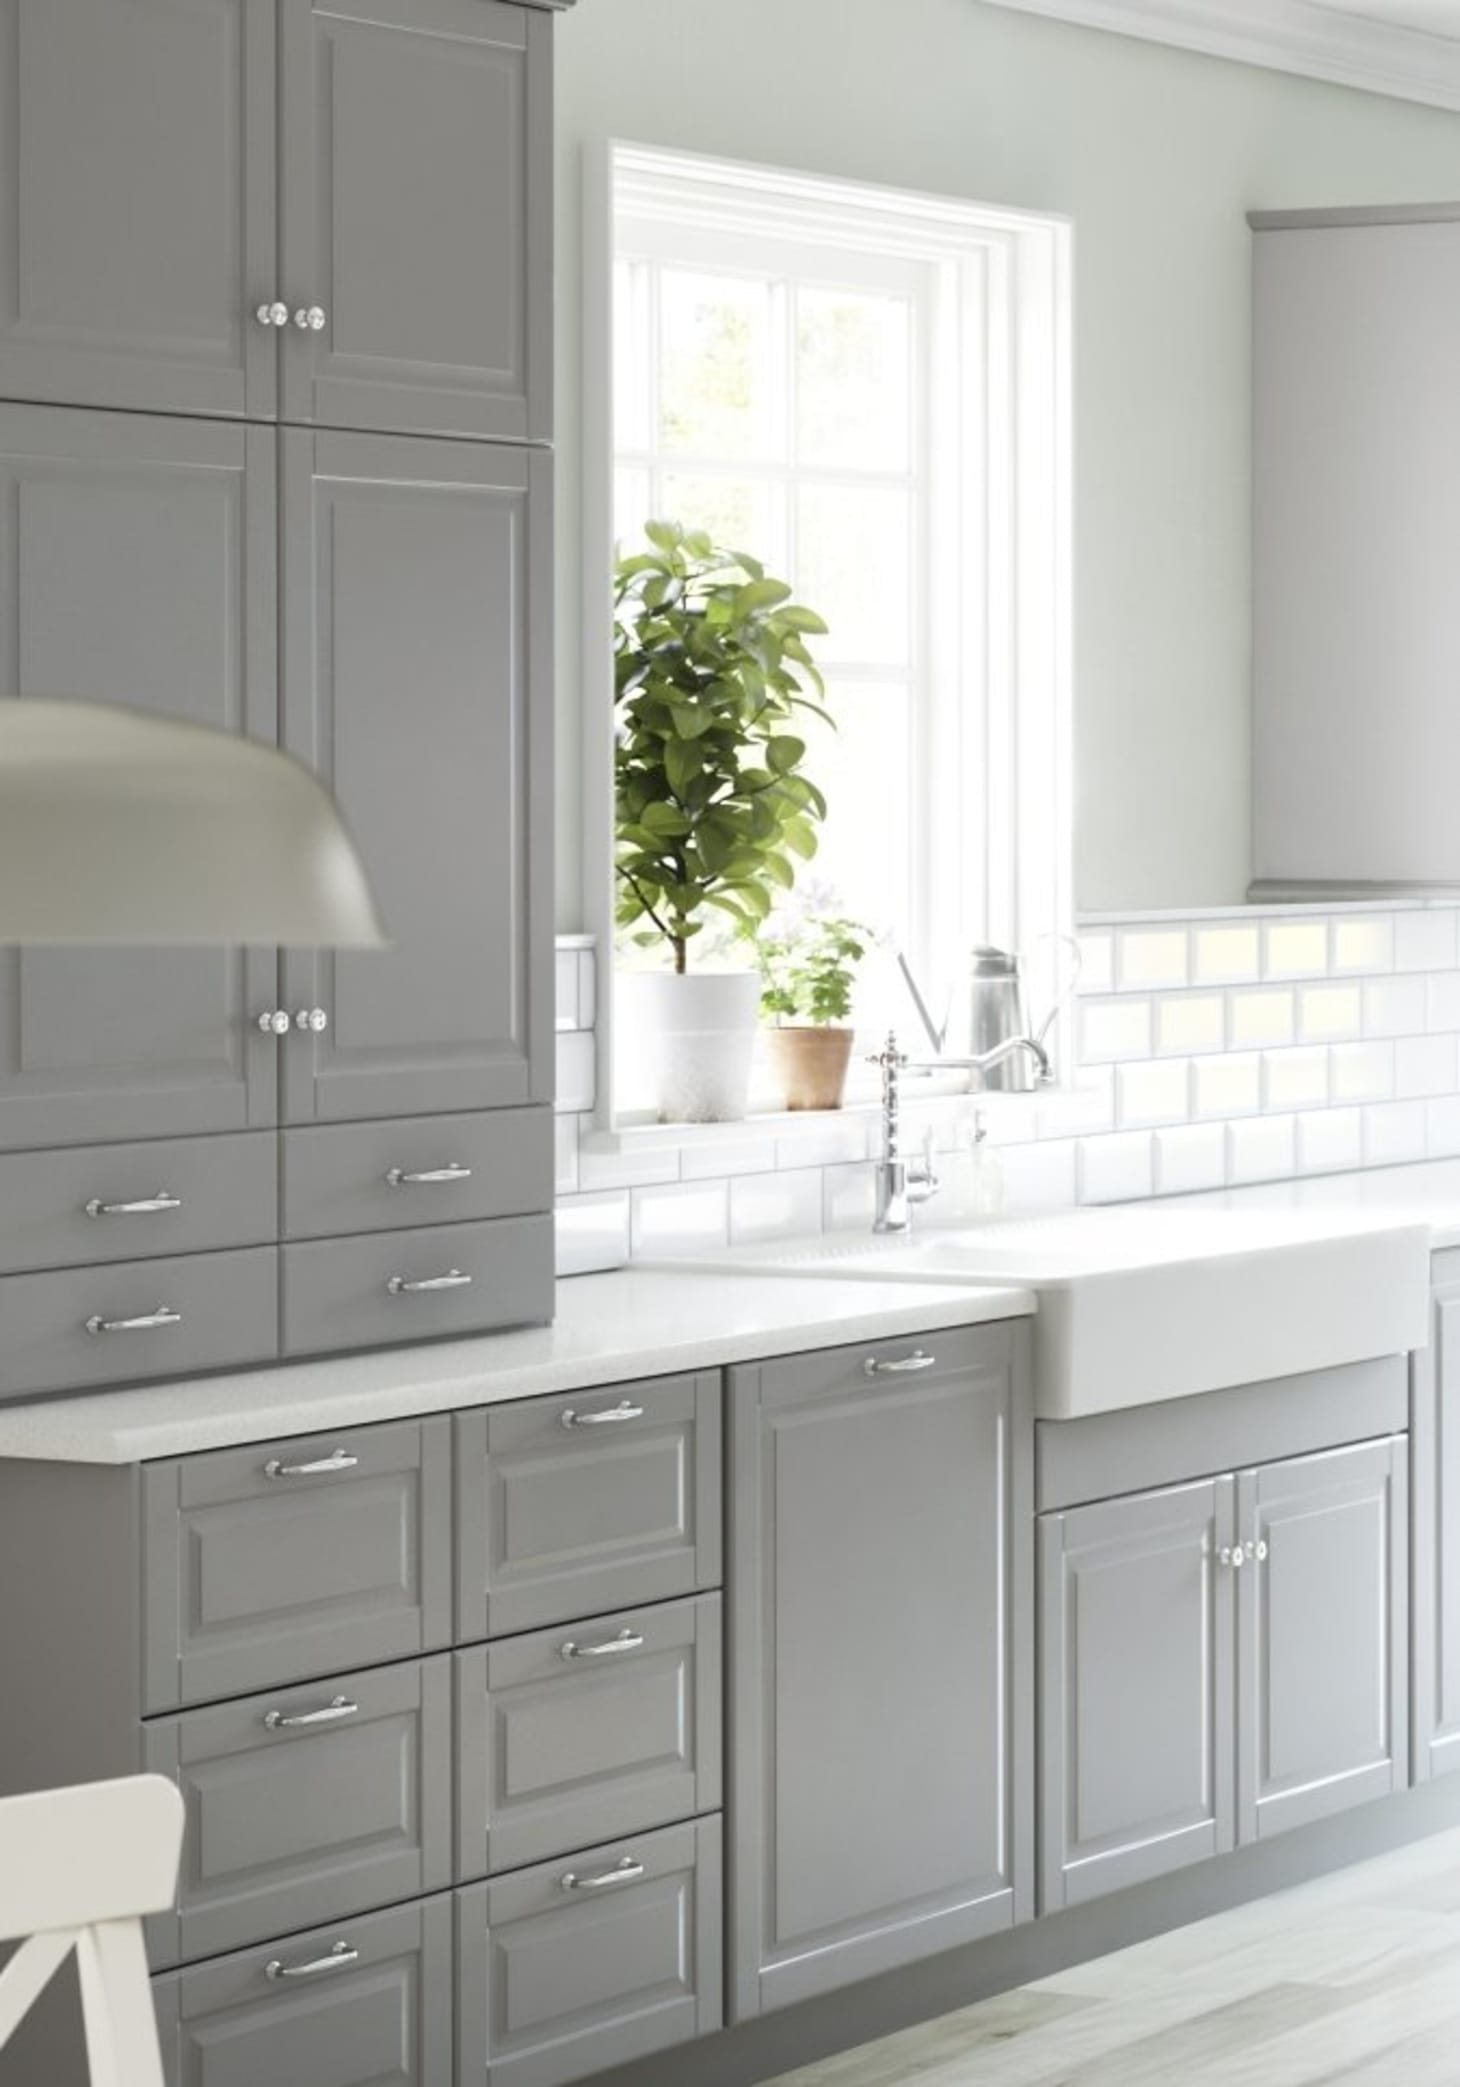 Ikea Sektion New Kitchen Cabinet Guide Photos Prices Sizes And